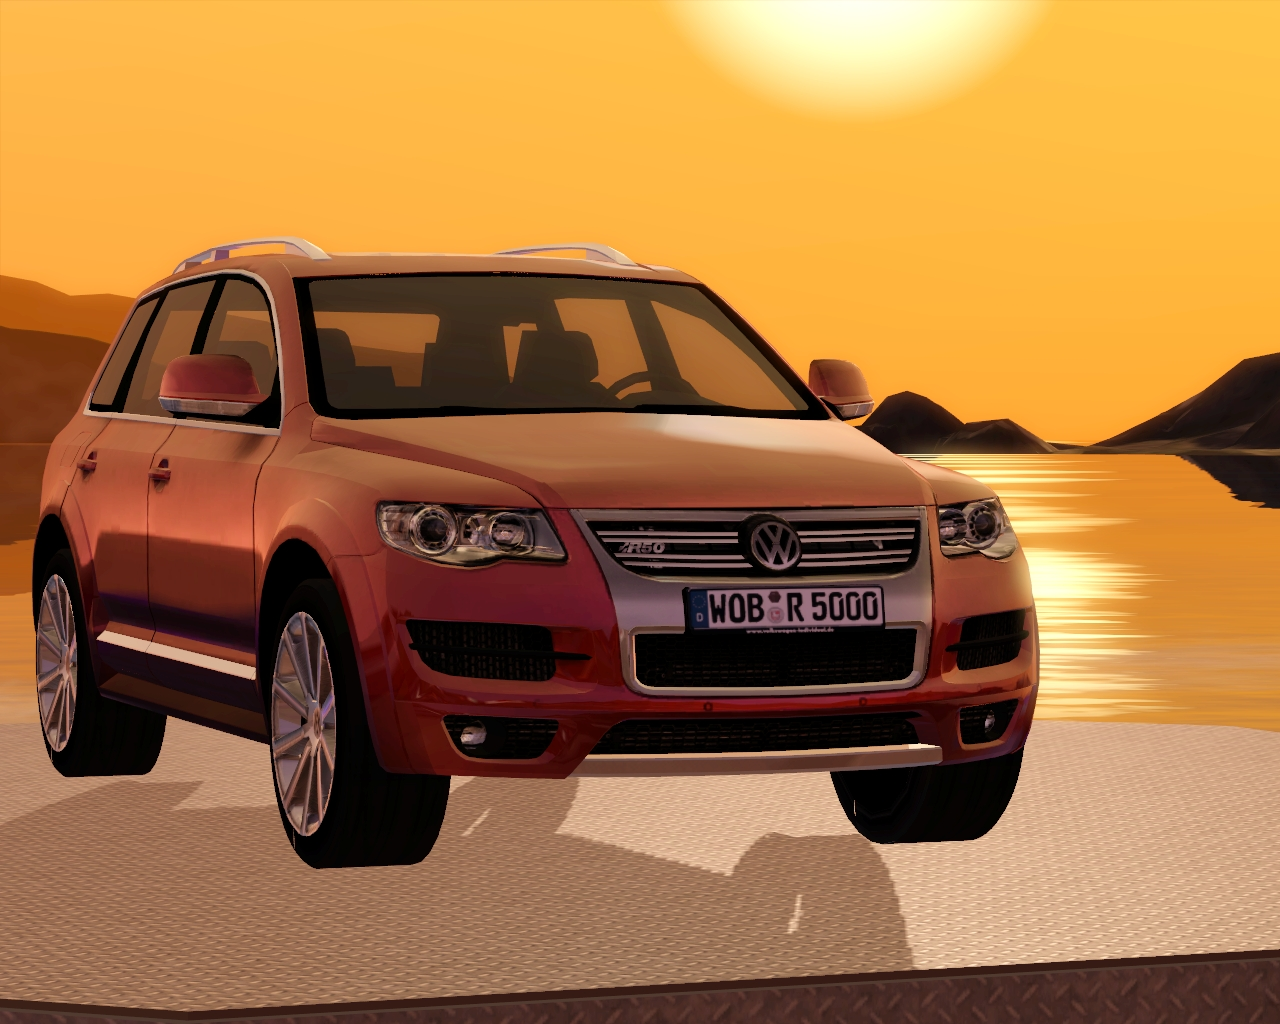 2008 Volkswagen Touareg R50 by Fresh-Prince